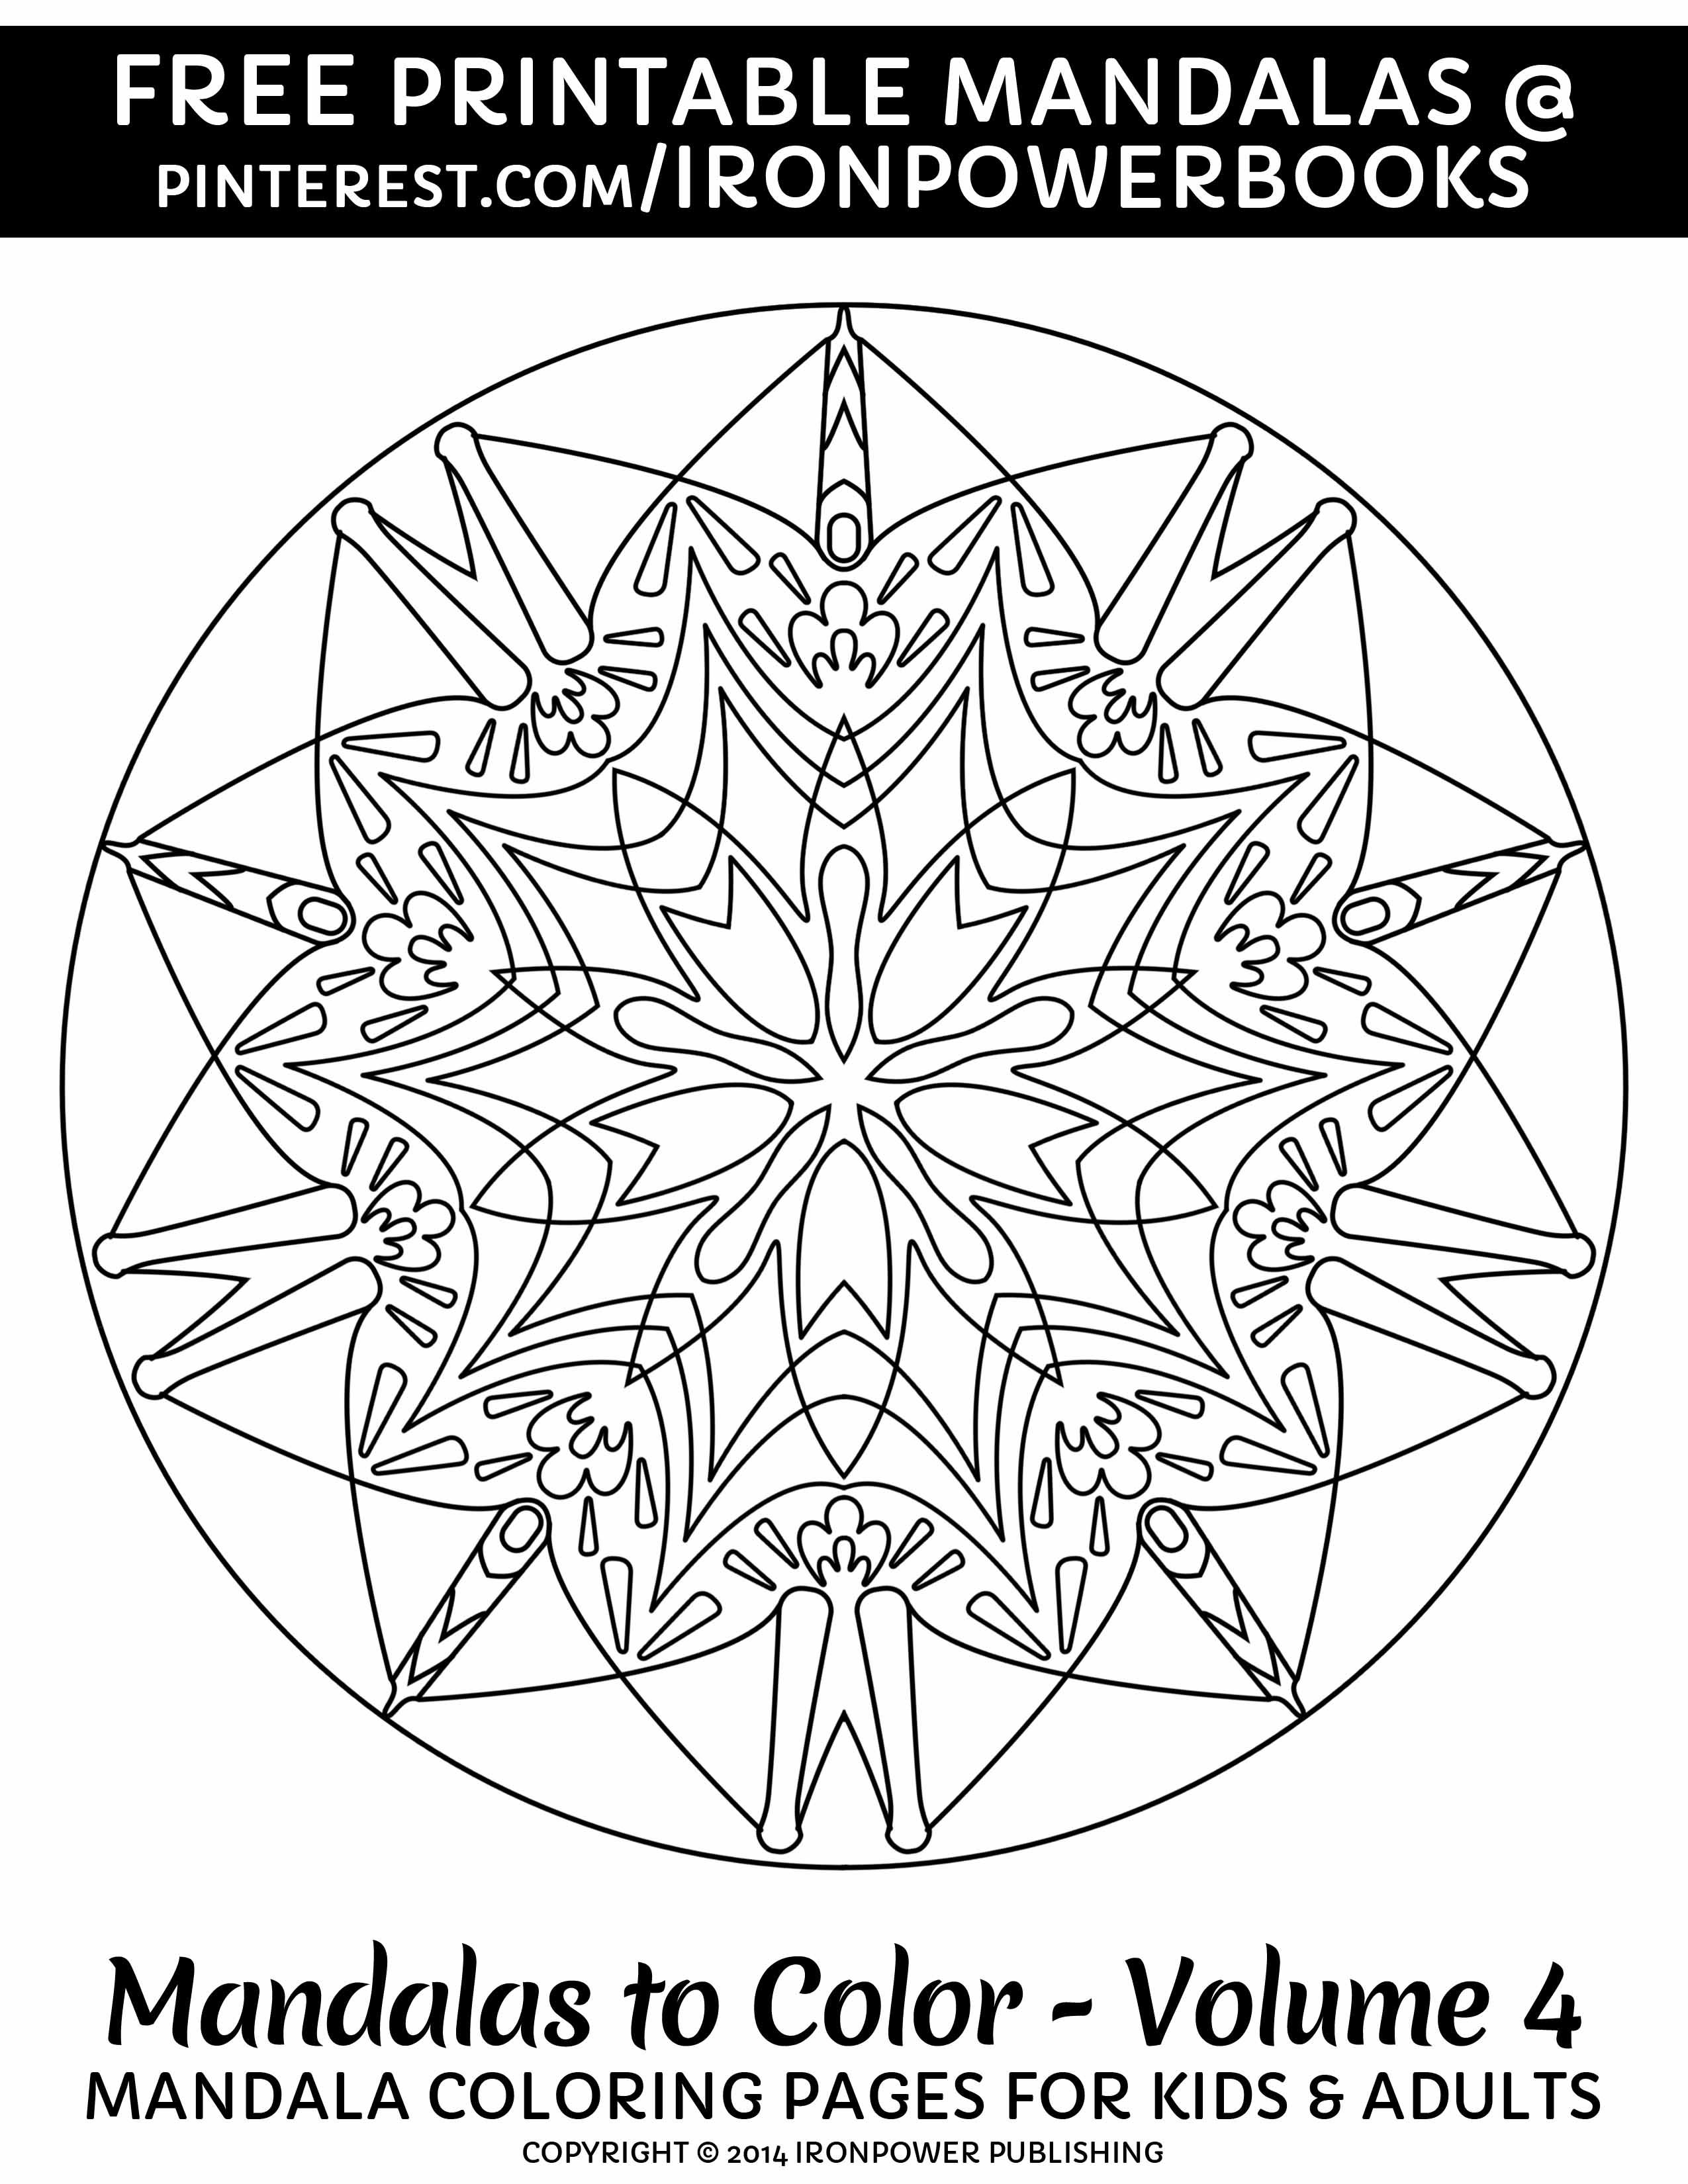 Free Printable Mandala Coloring Pages For Stress Relief Or As Art Therapy For More Easy Mandala Mandala Coloring Pages Mandala Coloring Books Mandala Coloring